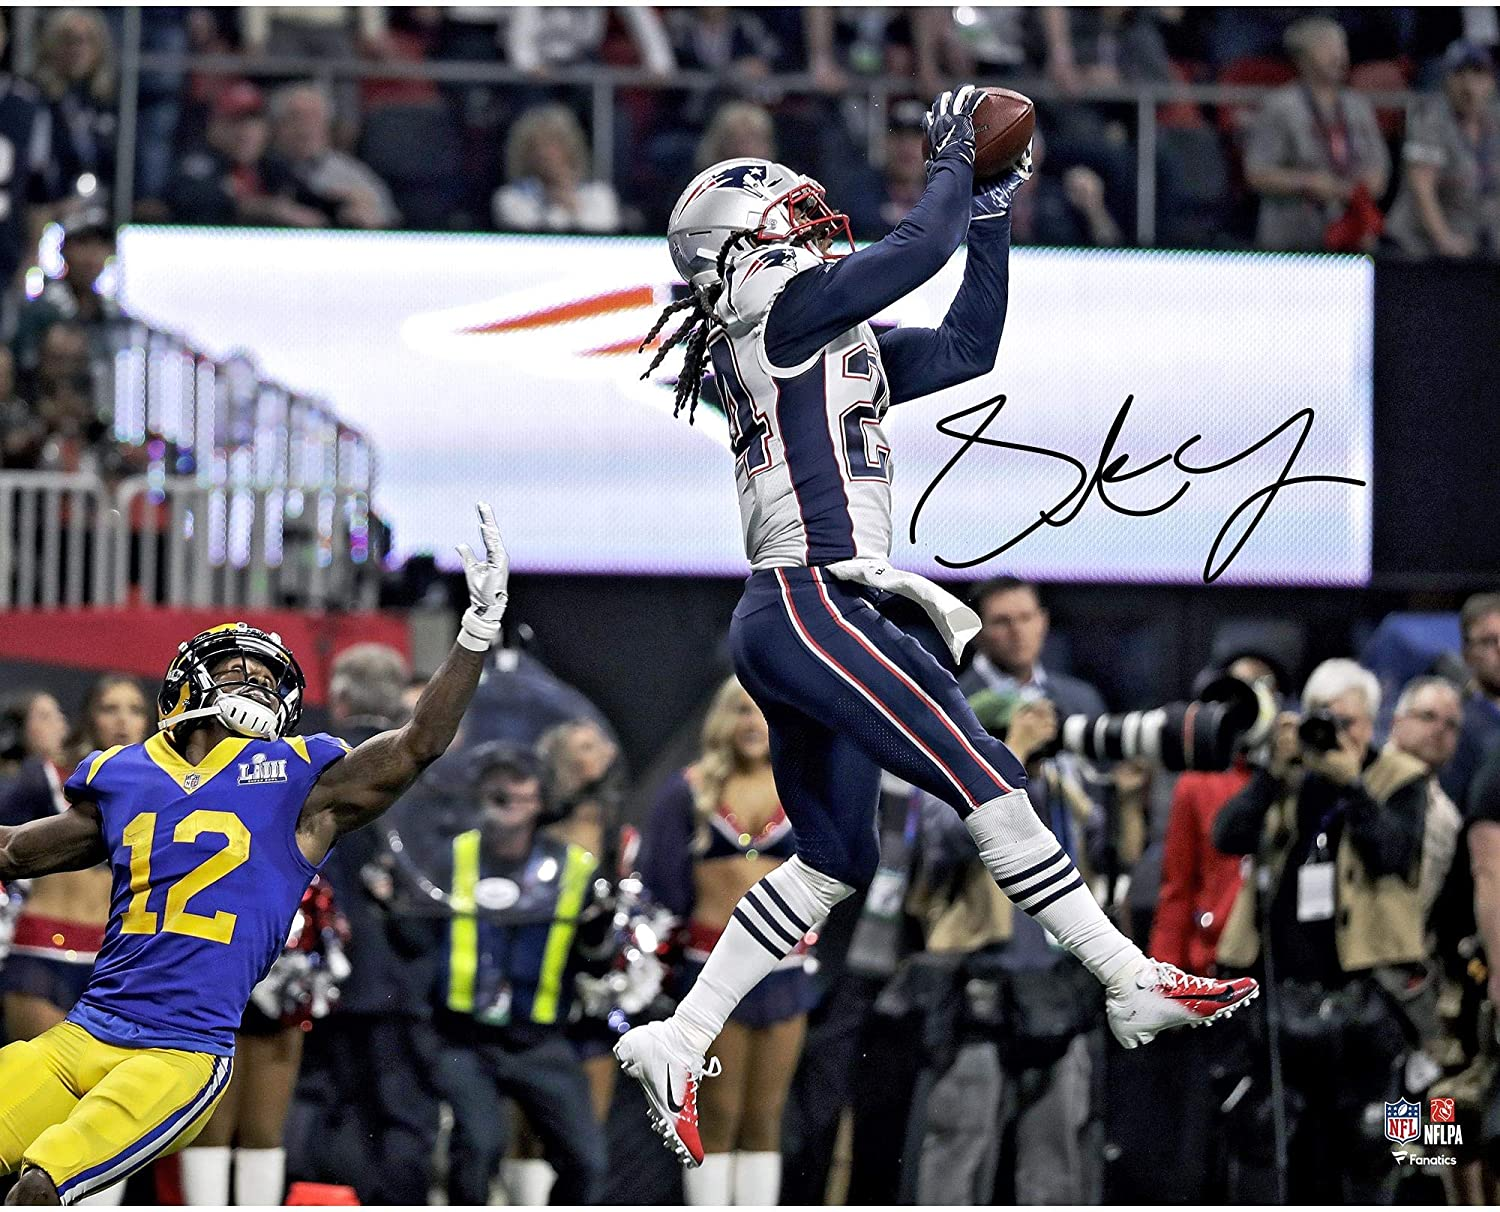 Stephon Gilmore New England Patriots Autographed 16' x 20' Super Bowl LIII Champions Game-Winning Interception Photograph - Fanatics Authentic Certified